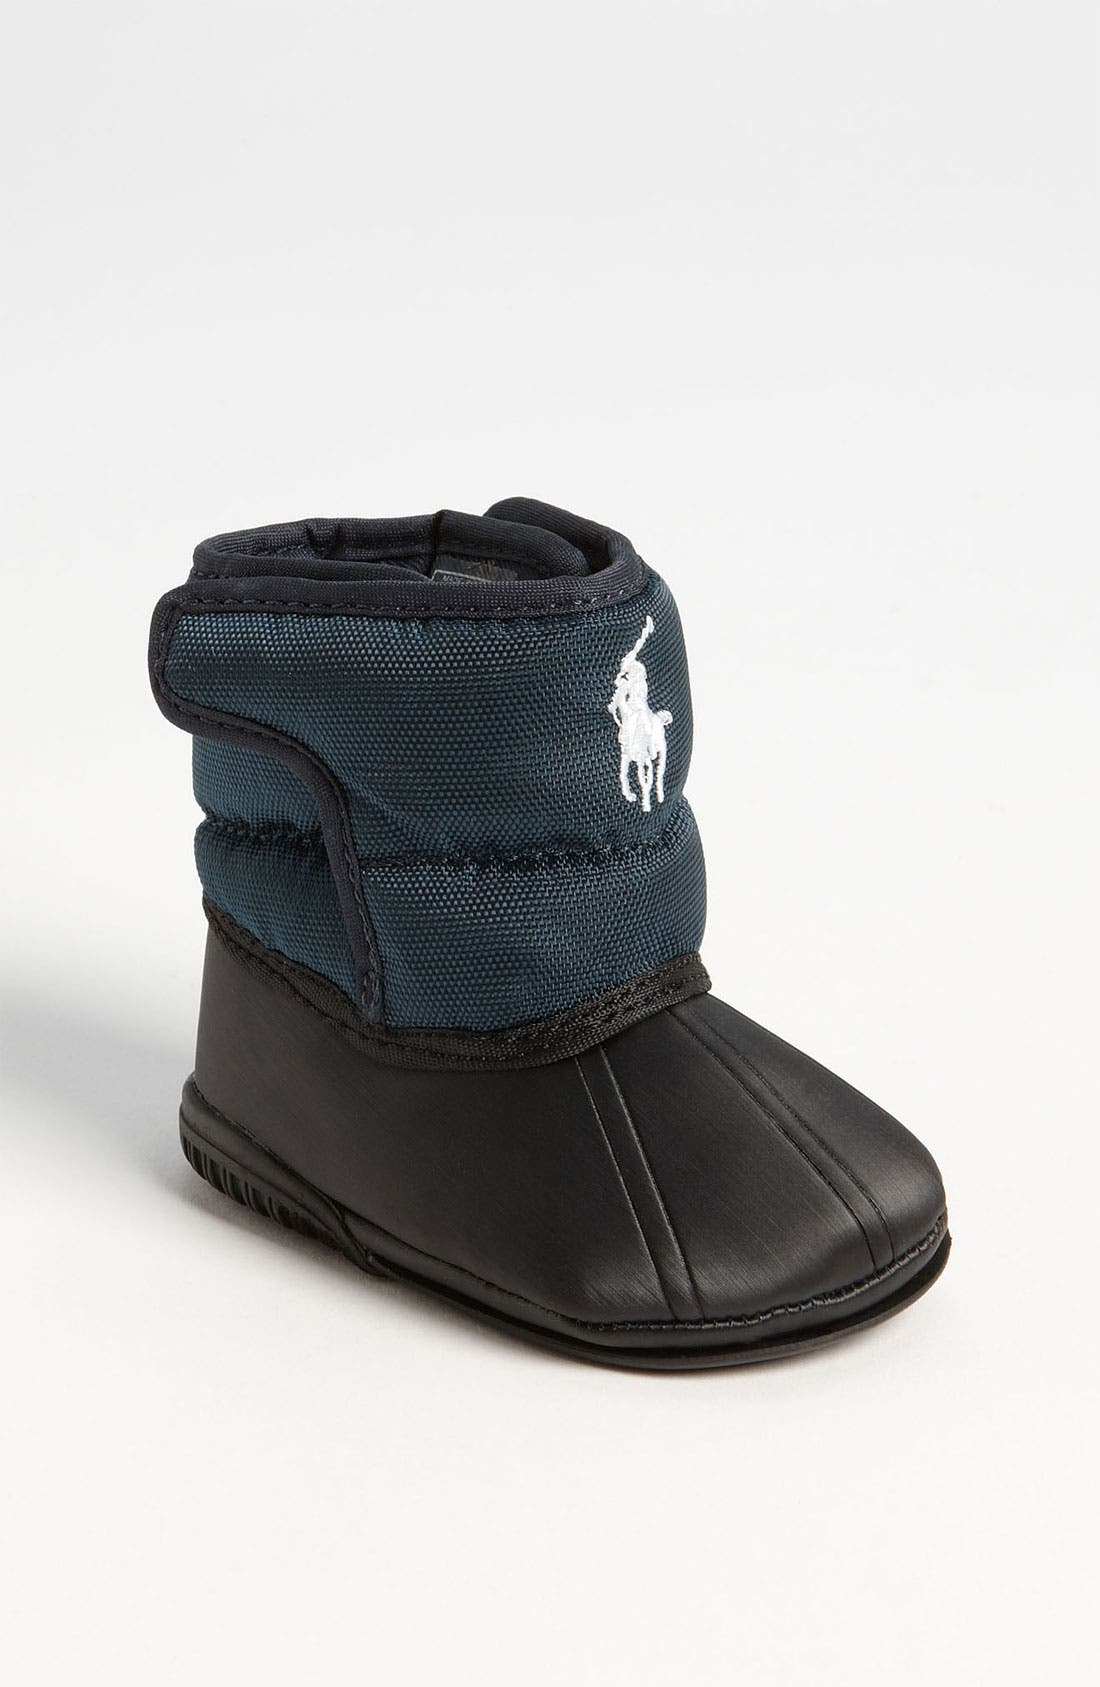 Alternate Image 1 Selected - Ralph Lauren Layette Bootie (Baby)